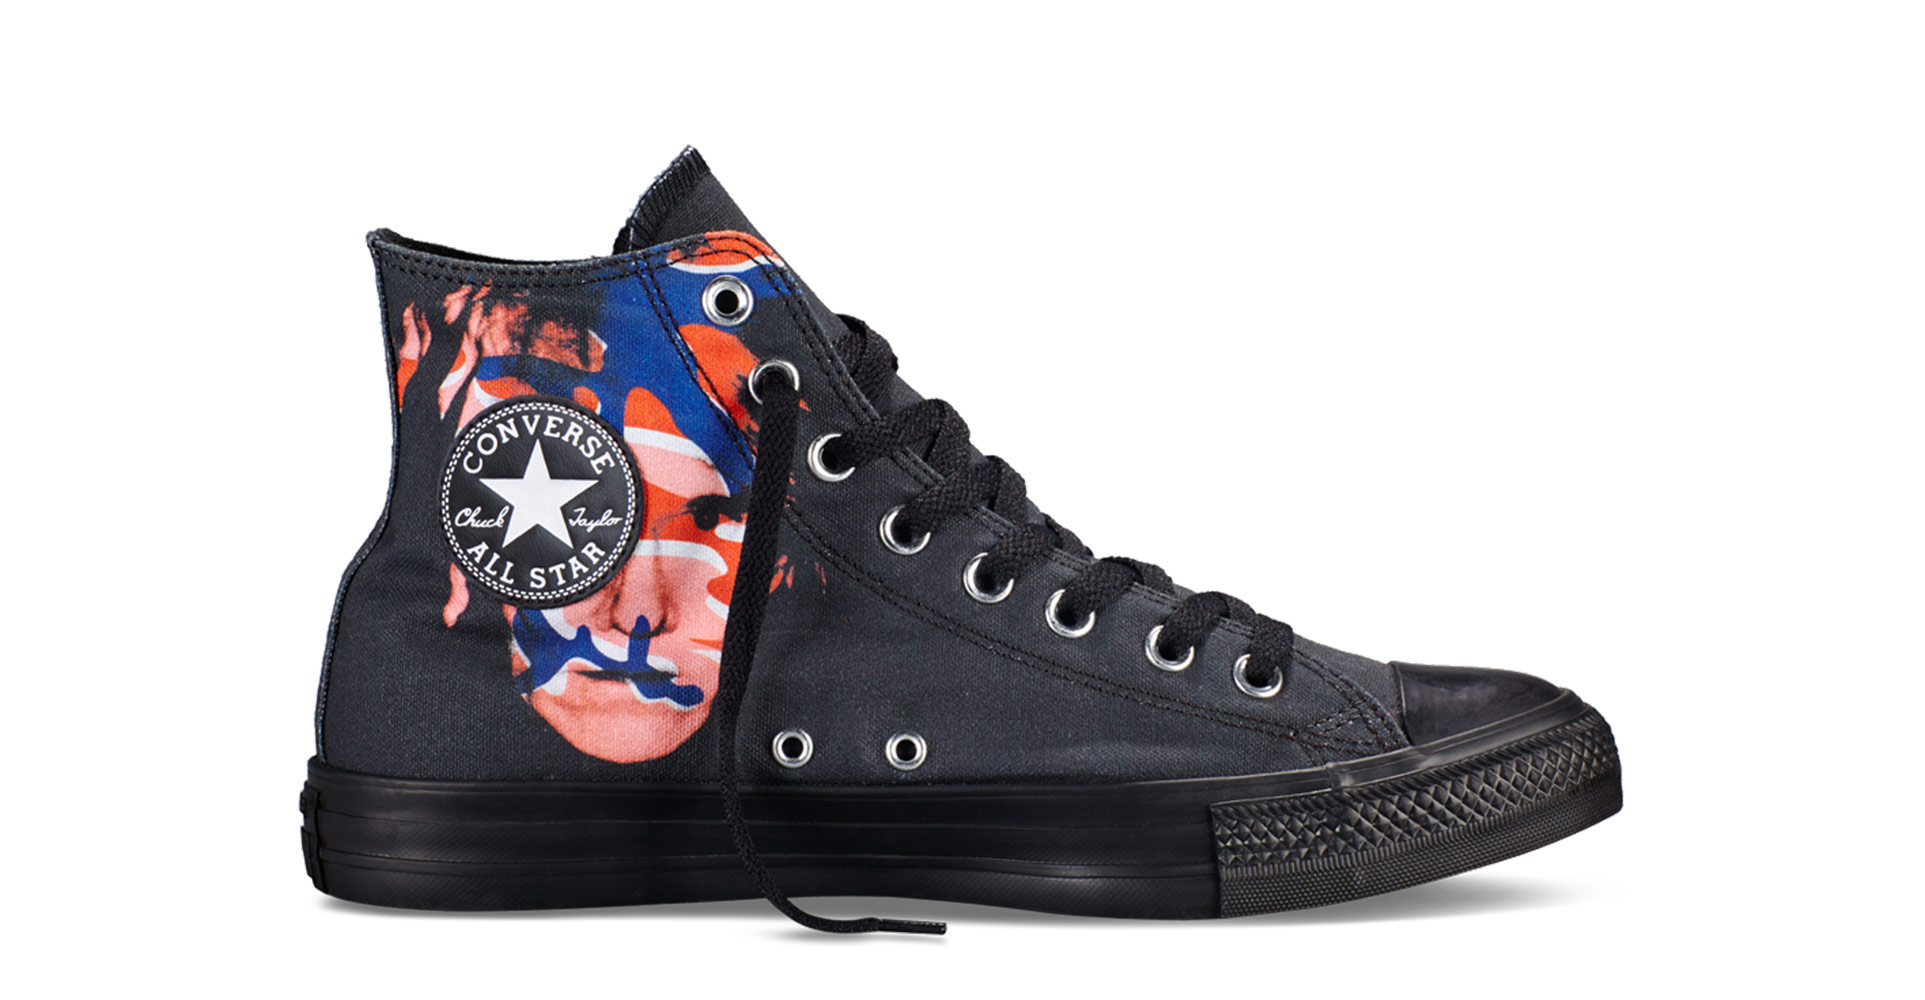 d381776f77b7 Converse launches Chuck Taylor All Star Andy Warhol Collection ...